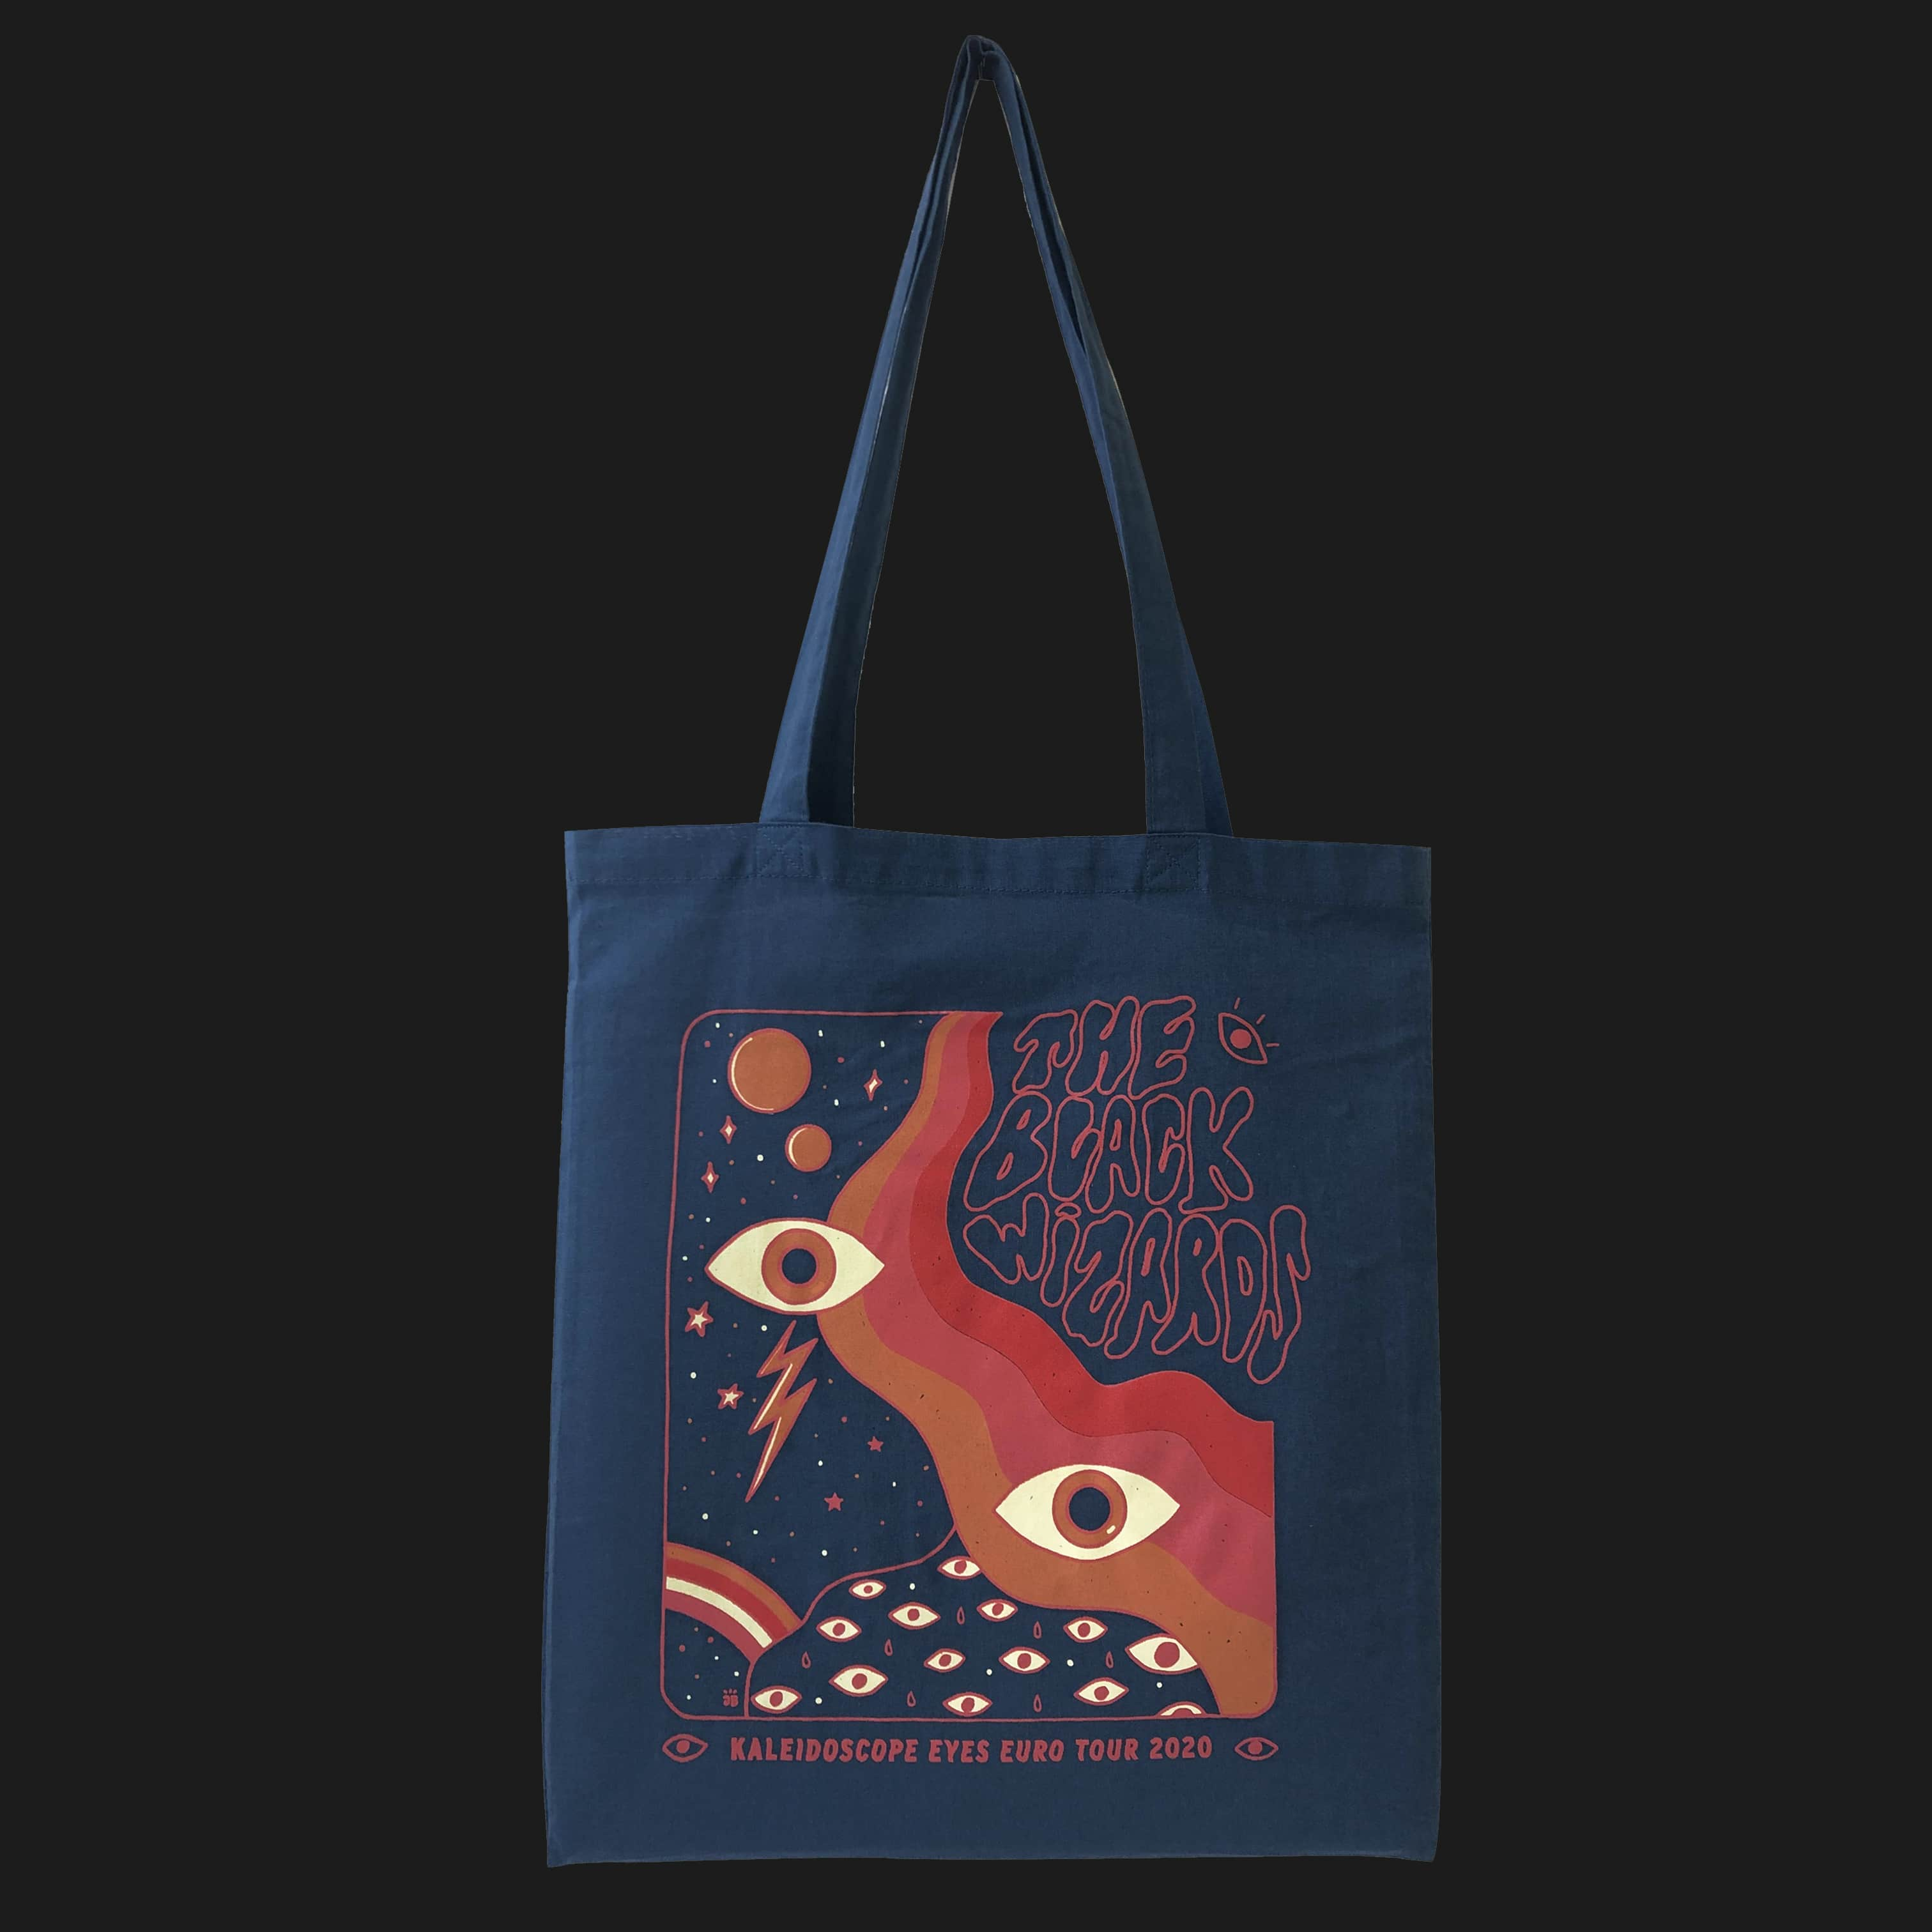 Kaleidoscope Eyes ToteBag